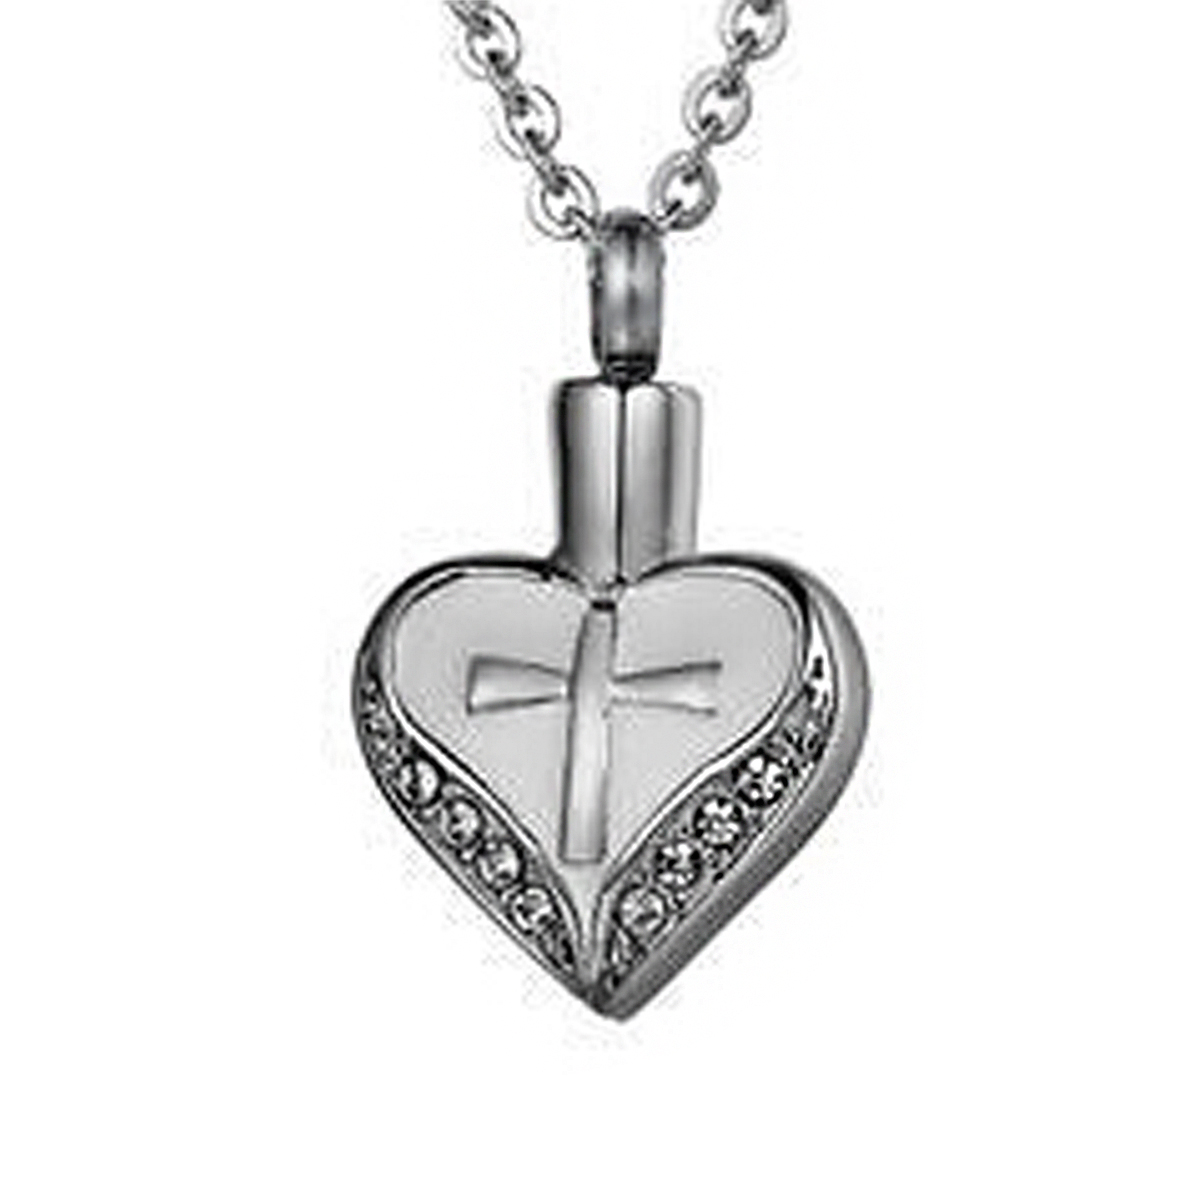 dad steel my cremation for ashes memorial gift pendant lariat irregular heart product lily in with stainless bag wholesale necklaces jewelry urn forever